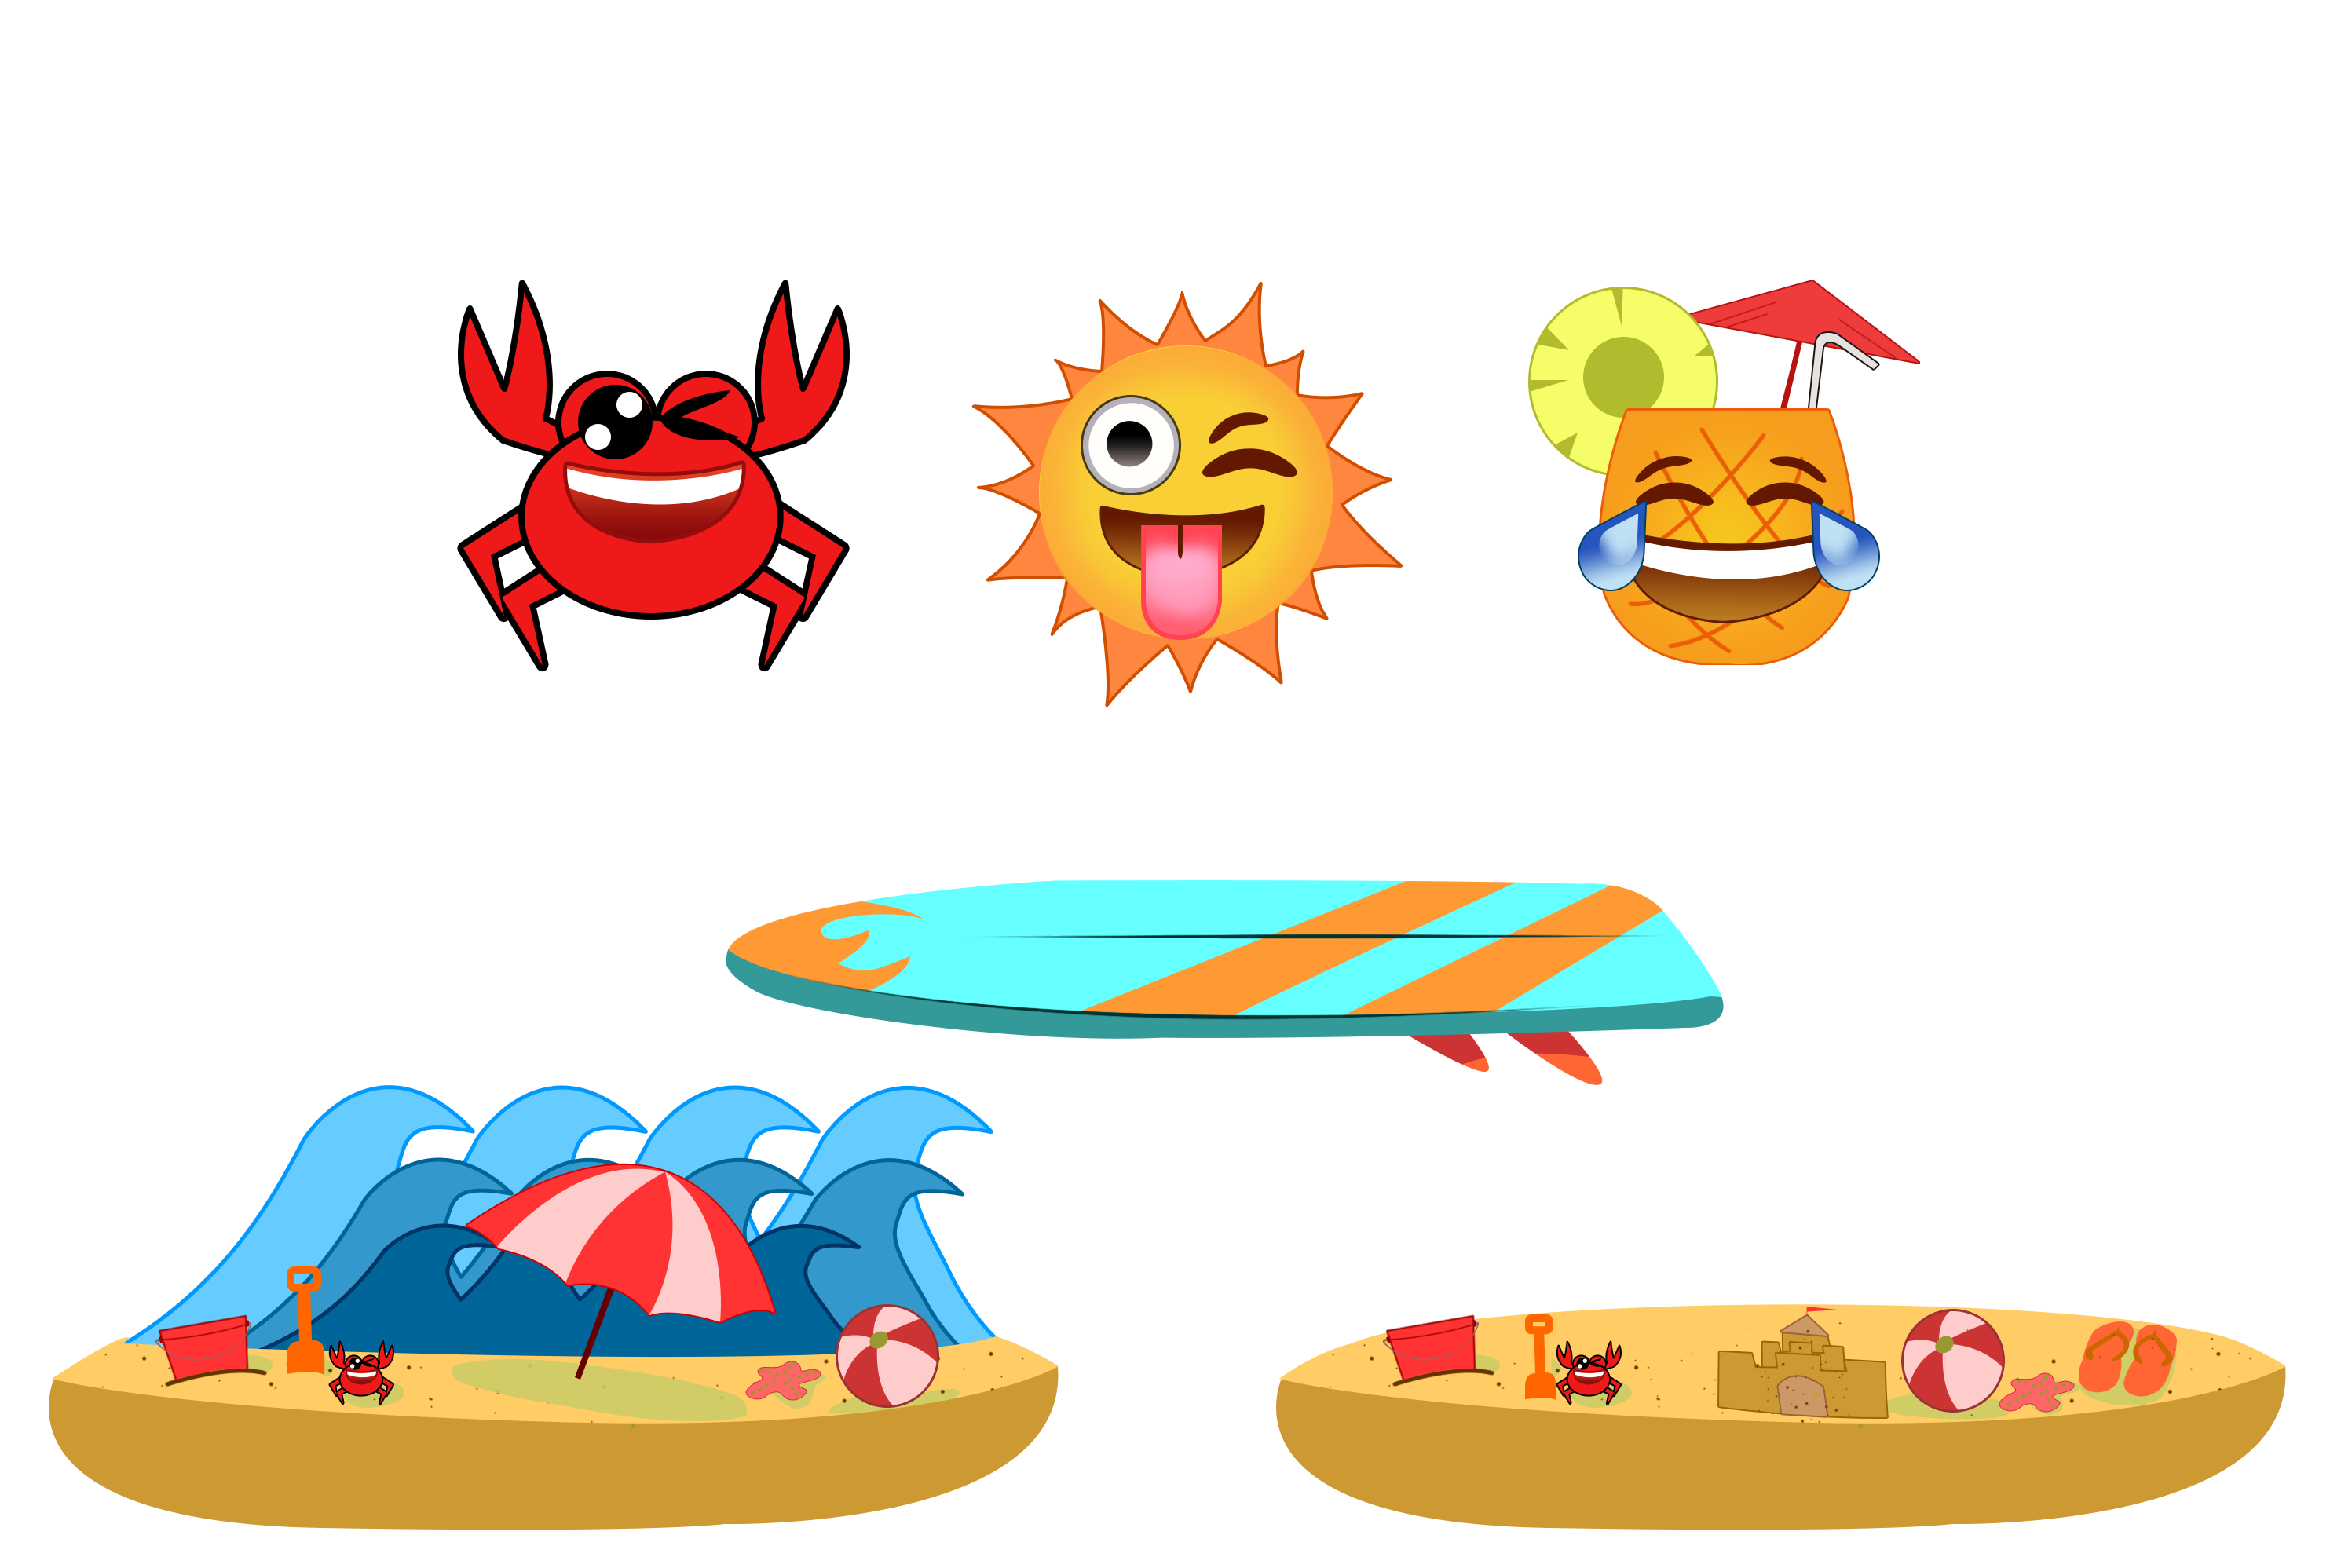 Summer theme png. Emojis and platforms for